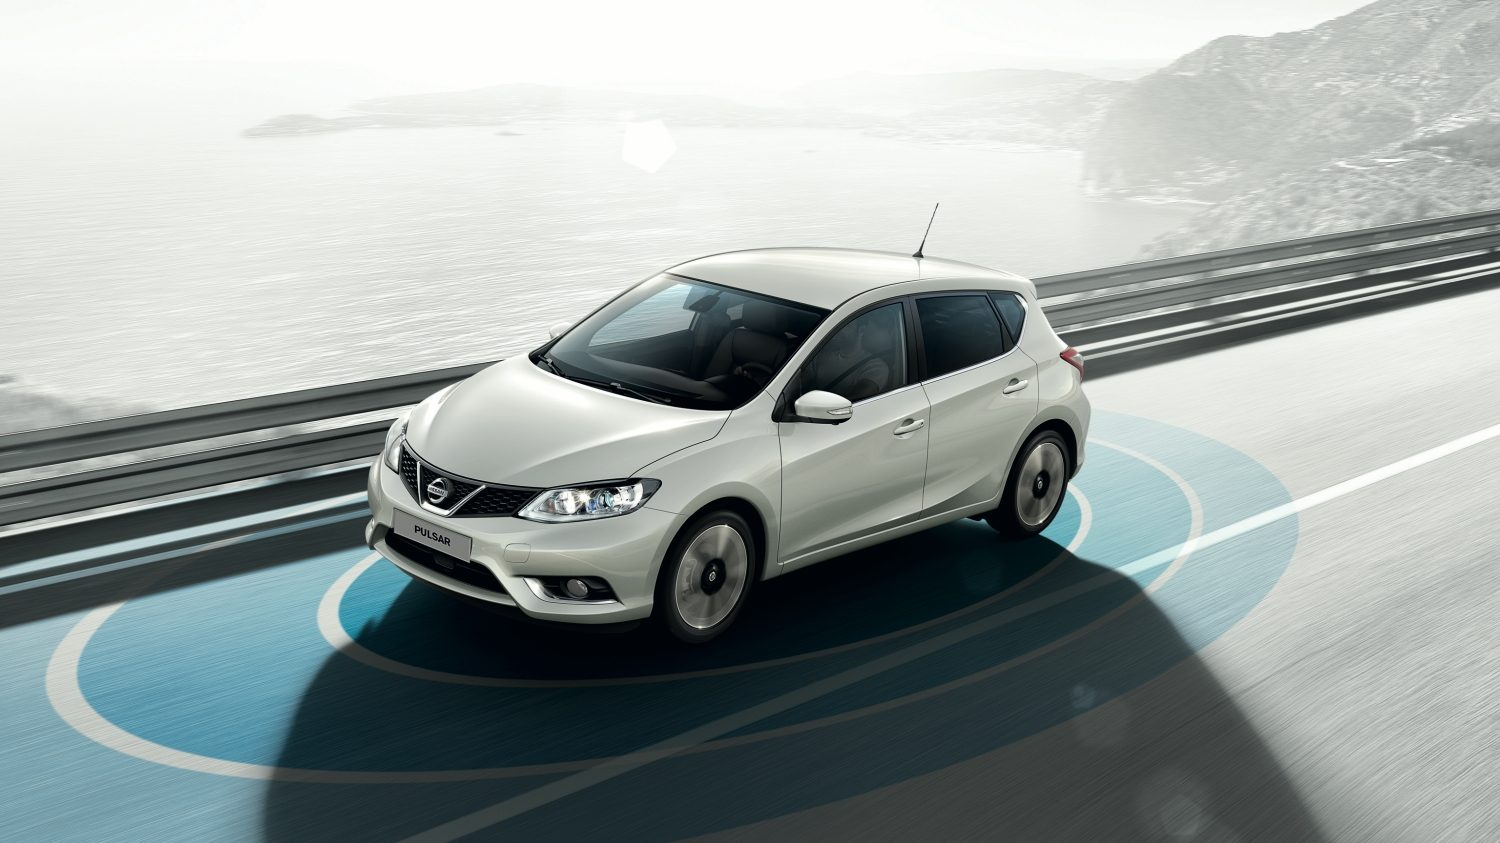 Berline Nissan PULSAR - Vue 7/8 avec cercles Safety Shield